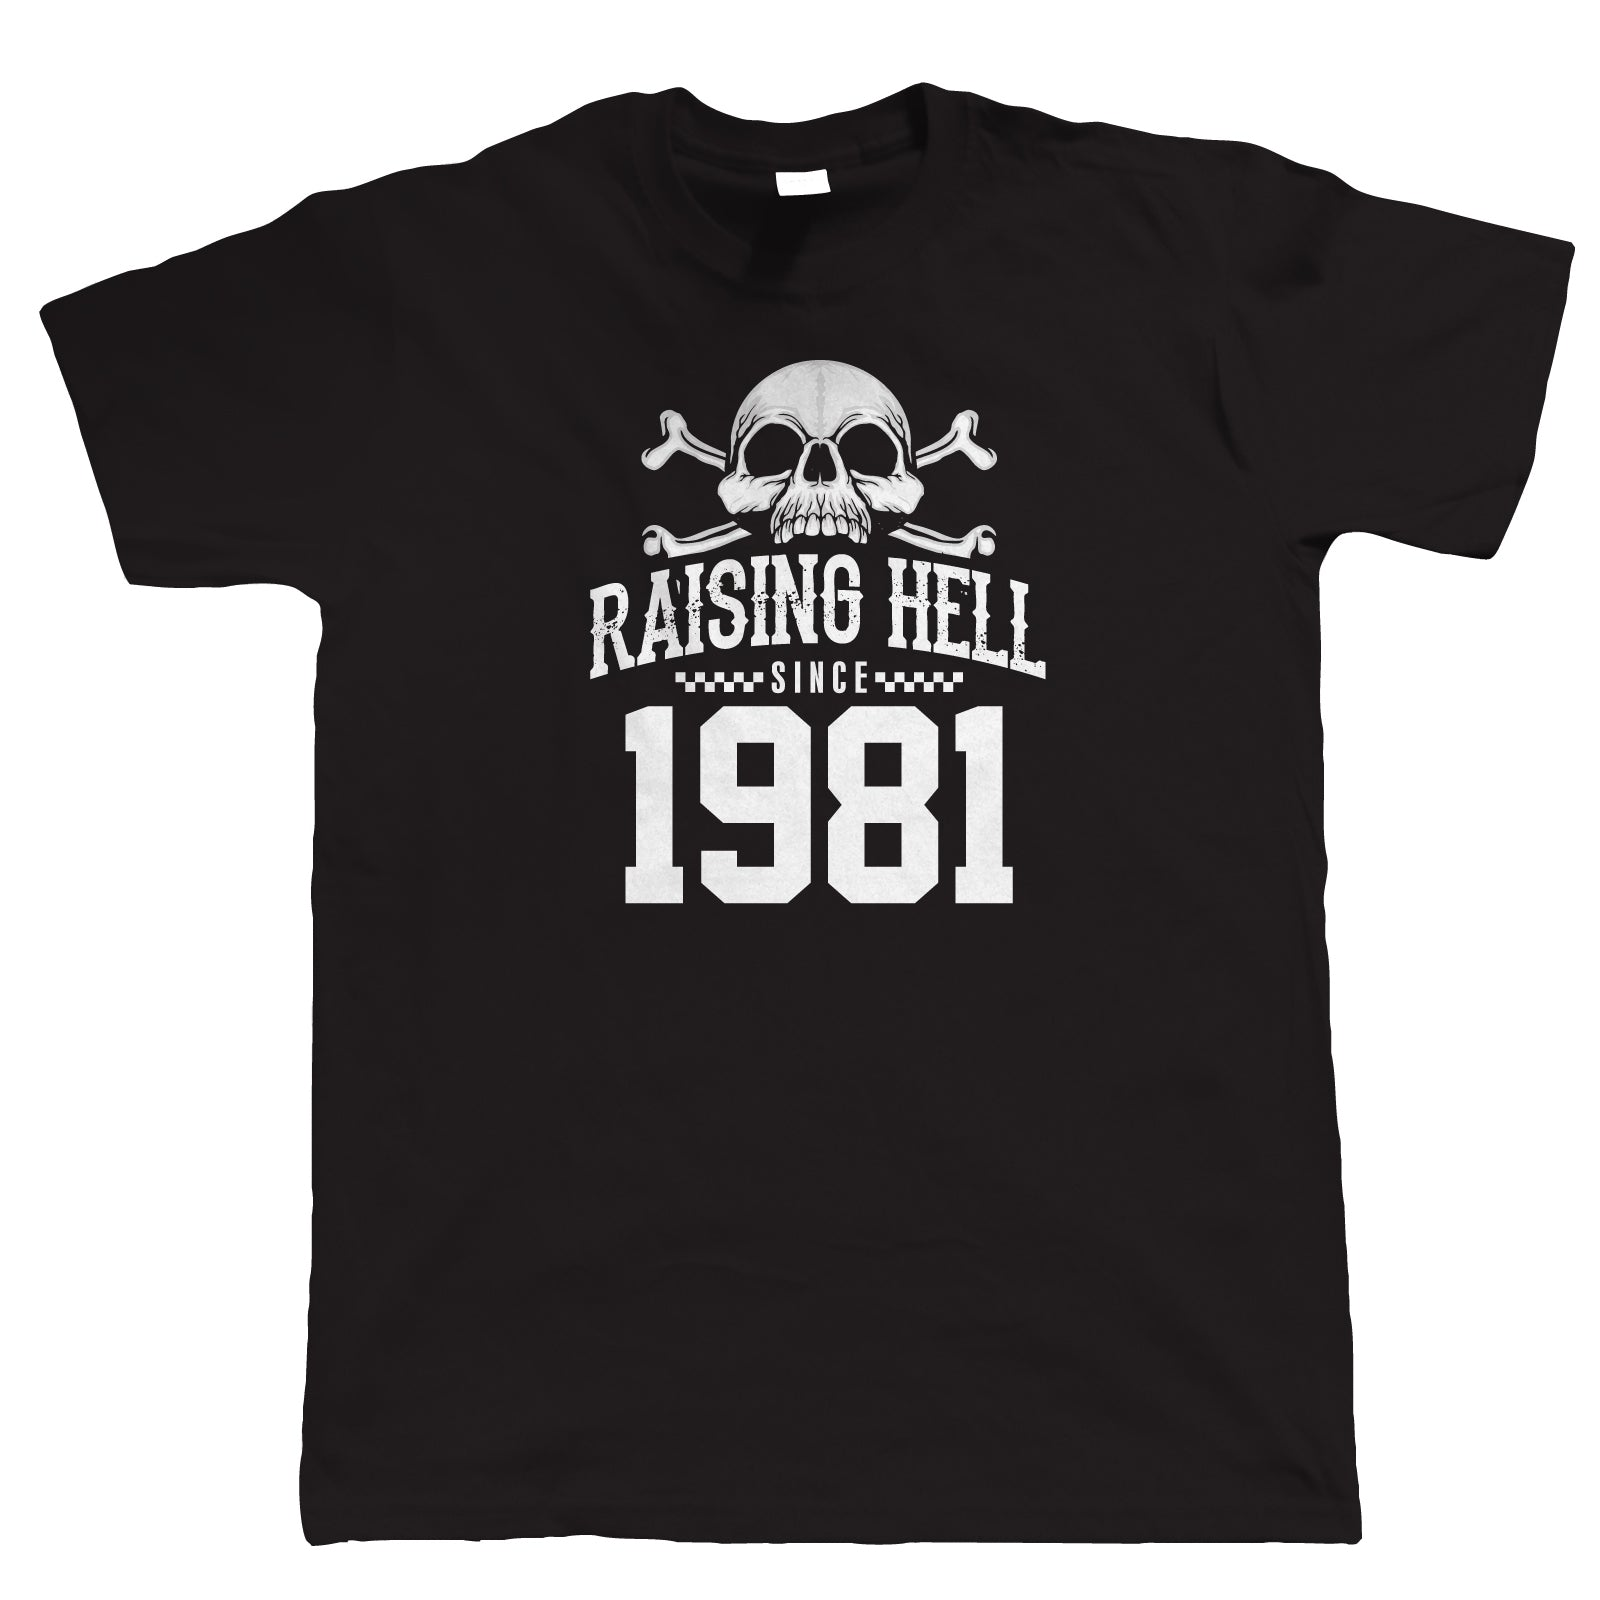 Raising Hell Since 1981, Mens Biker T-Shirt